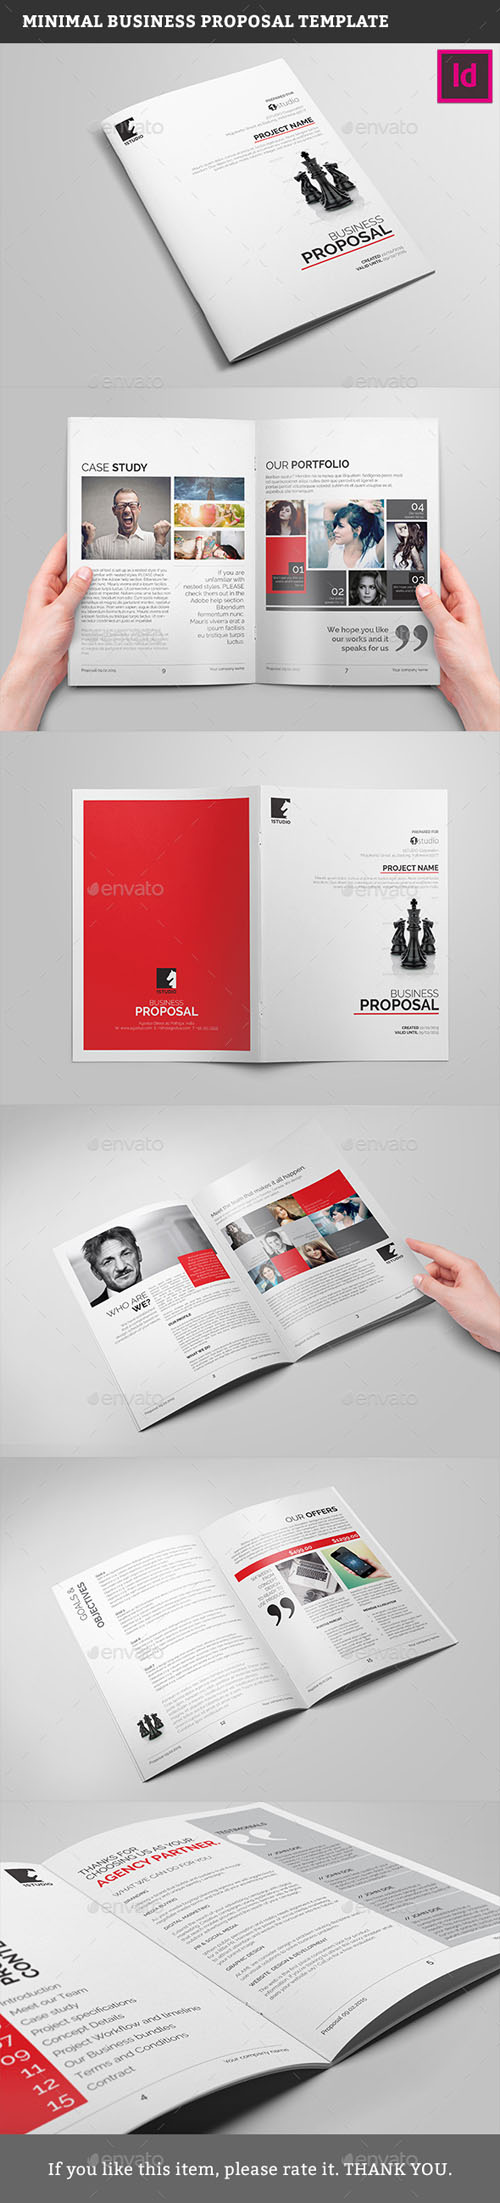 Minimal Business Proposal Template 13315555